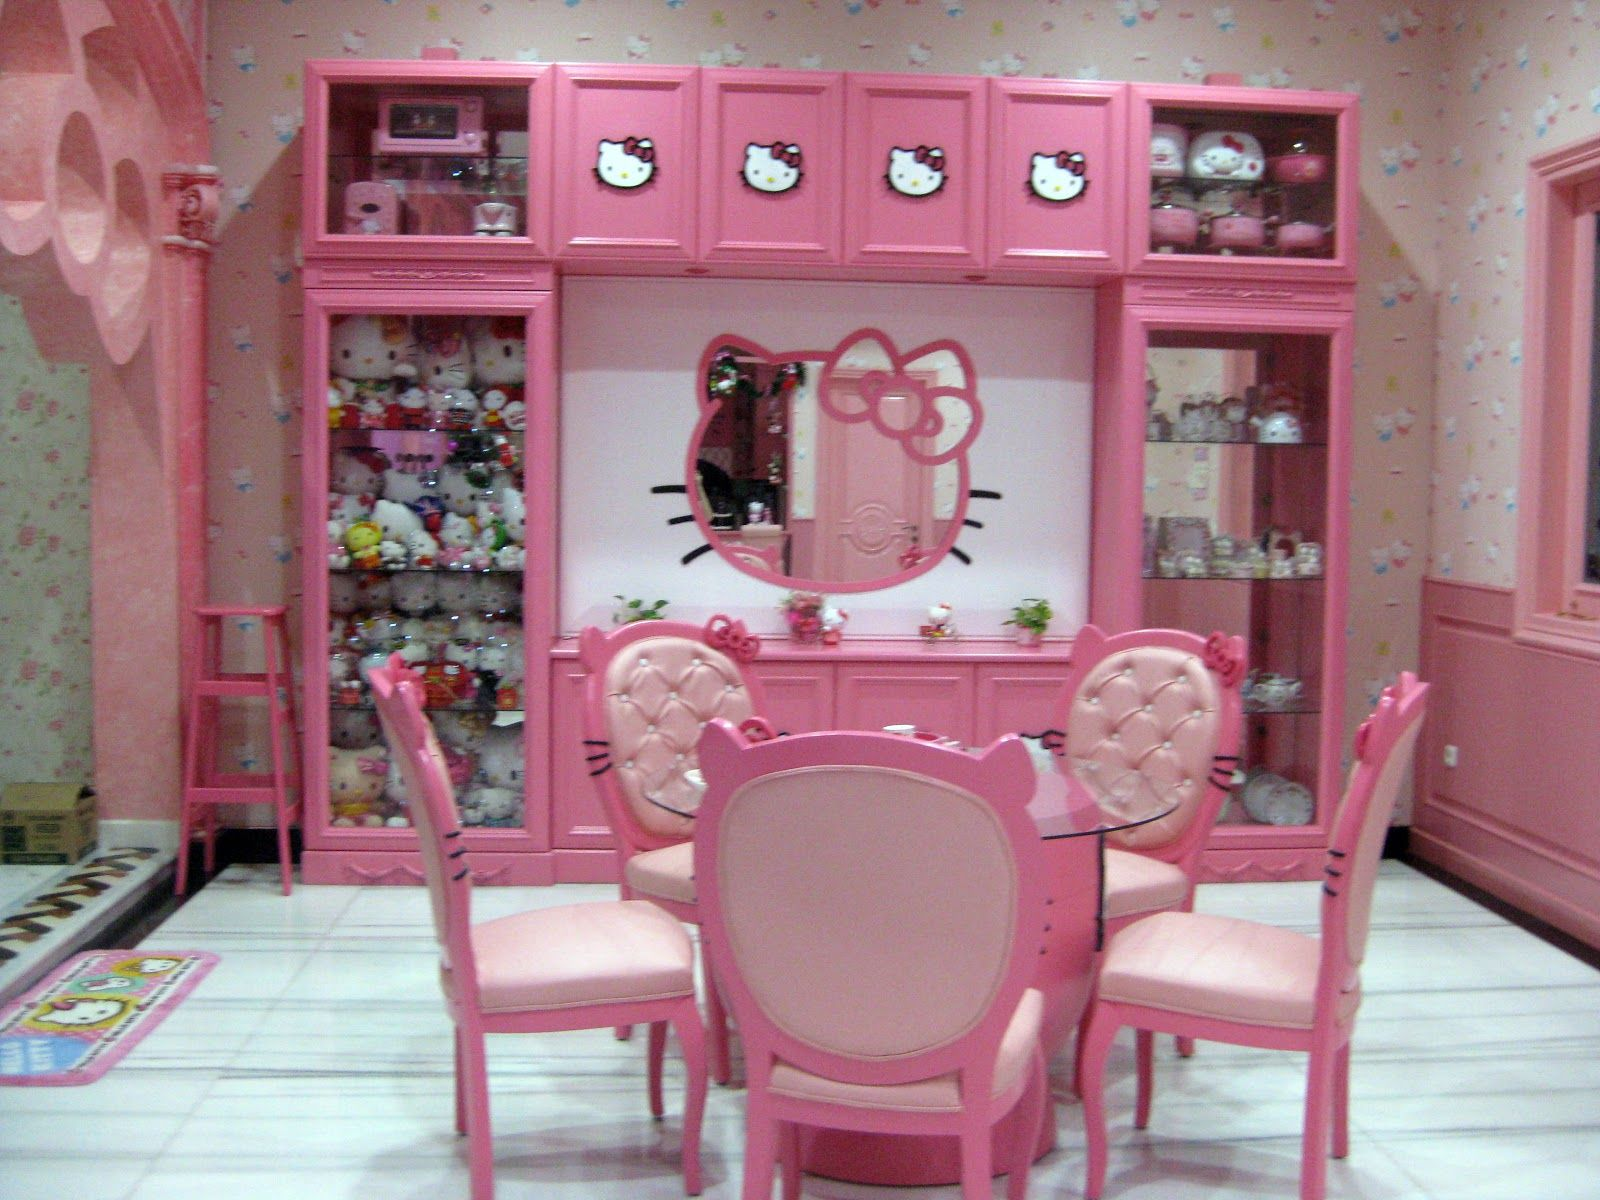 Hello Kitty House Google Search ハローキティー キティ ピンク